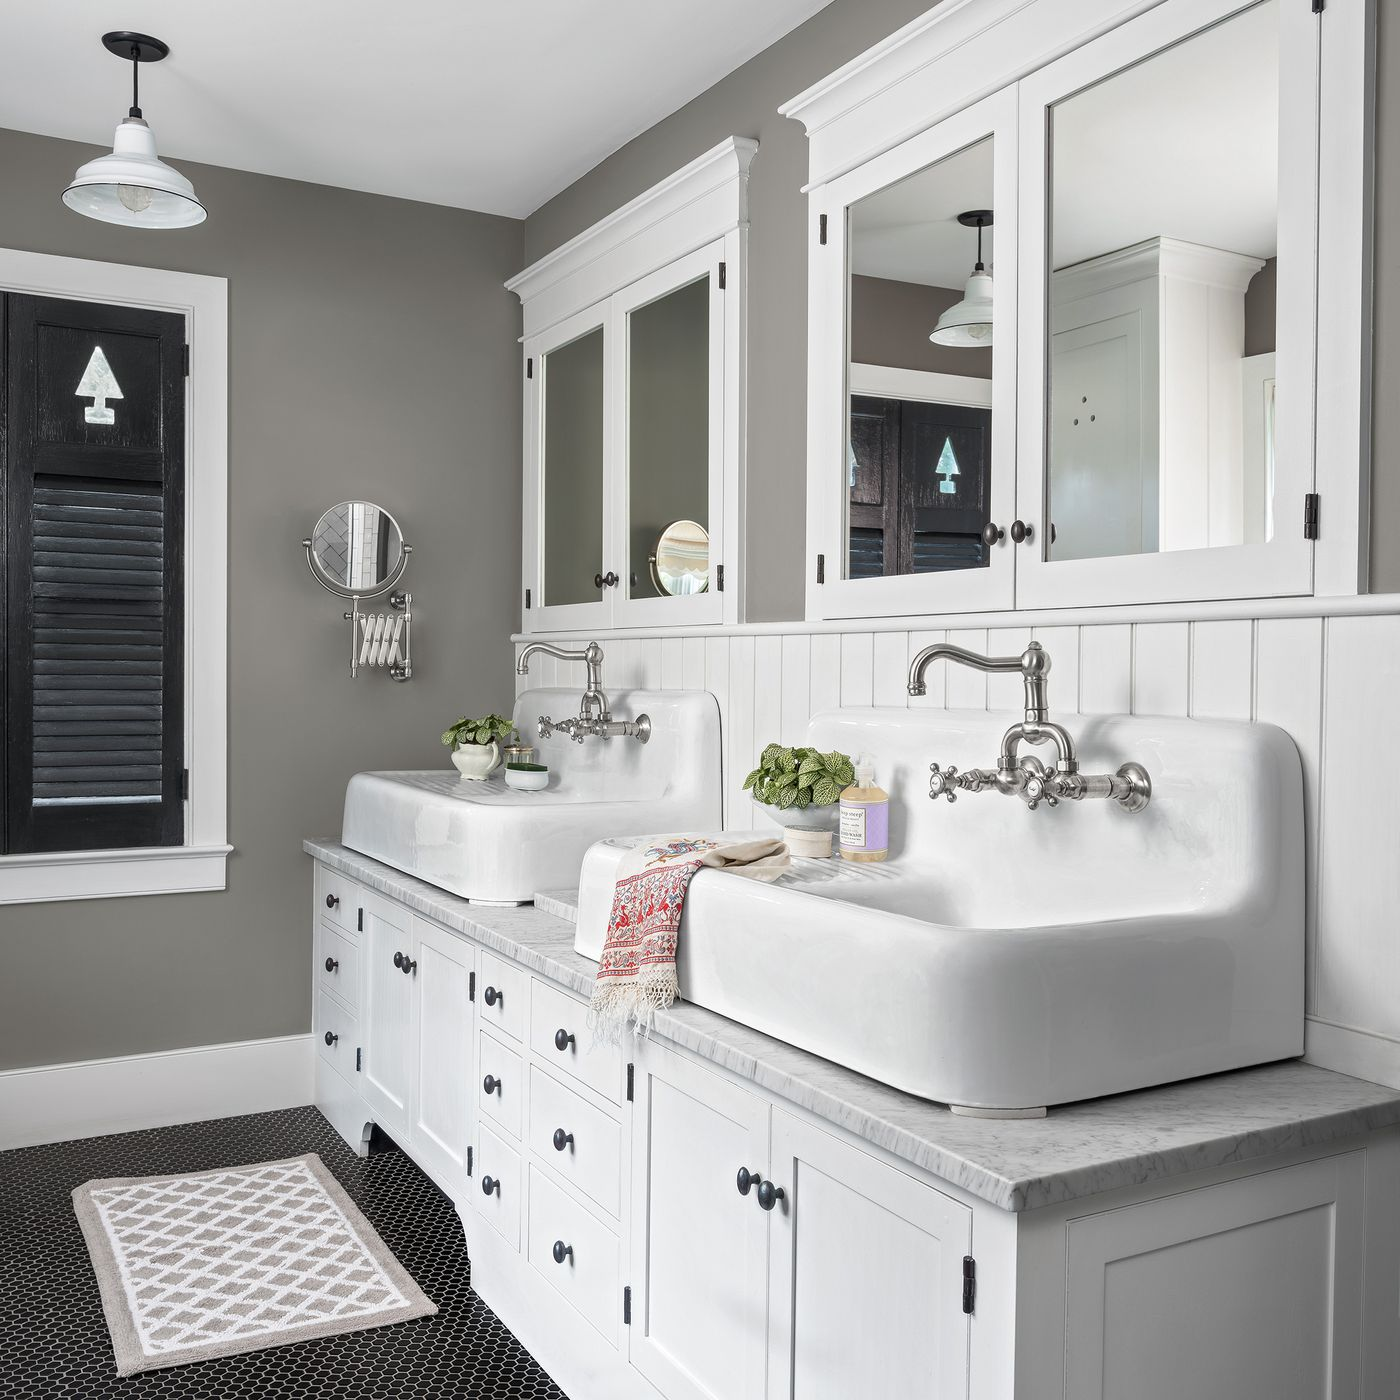 How To Choose A Bathroom Sink This Old House